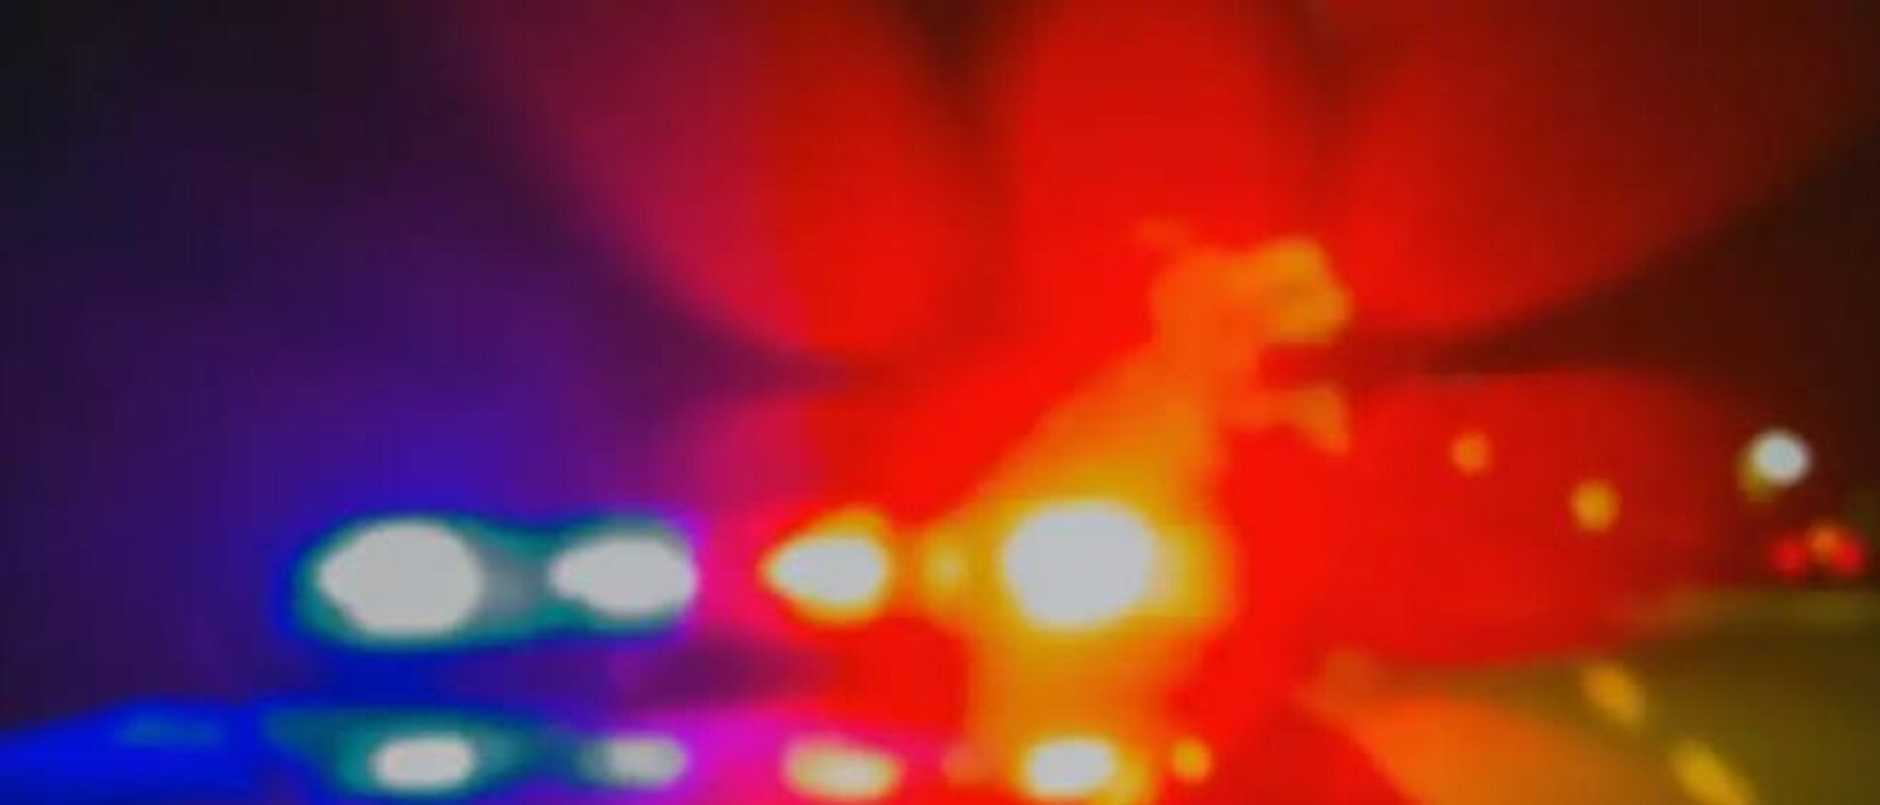 A five-year-old boy has died after being hit by a car exiting a driveway in Townsville.